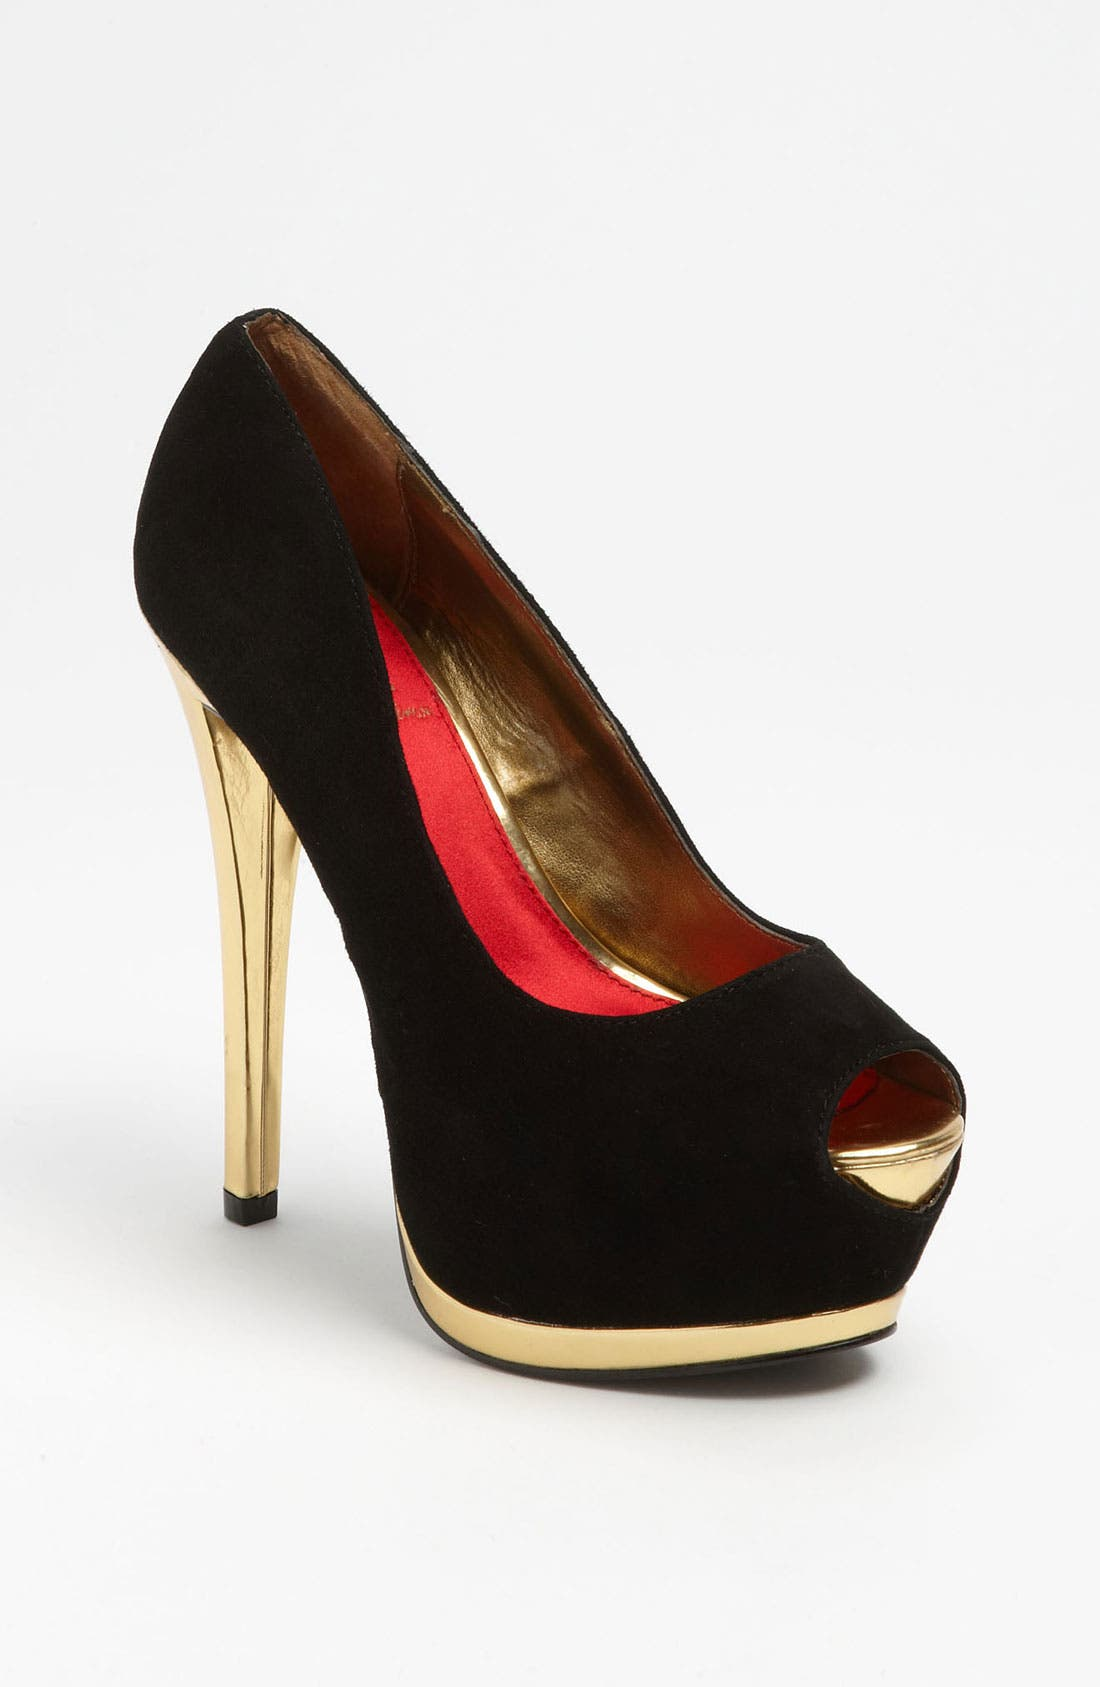 Main Image - Circus by Sam Edelman 'Tatiana' Pump